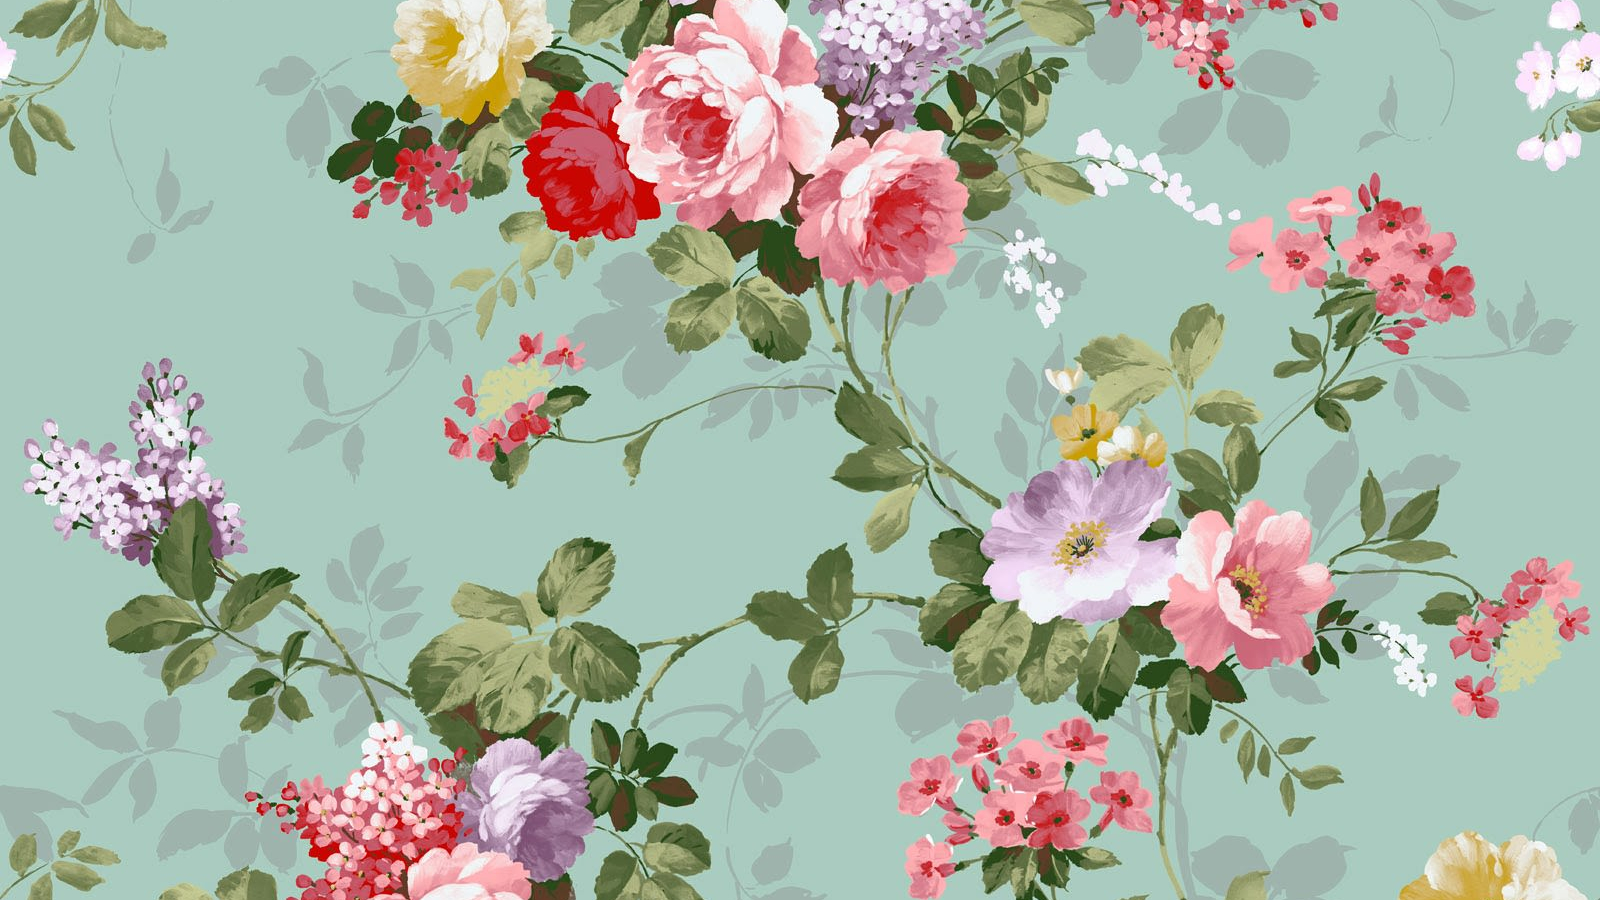 Free Download Antique Vintage Rose Flower Wallpaper 1600x1200